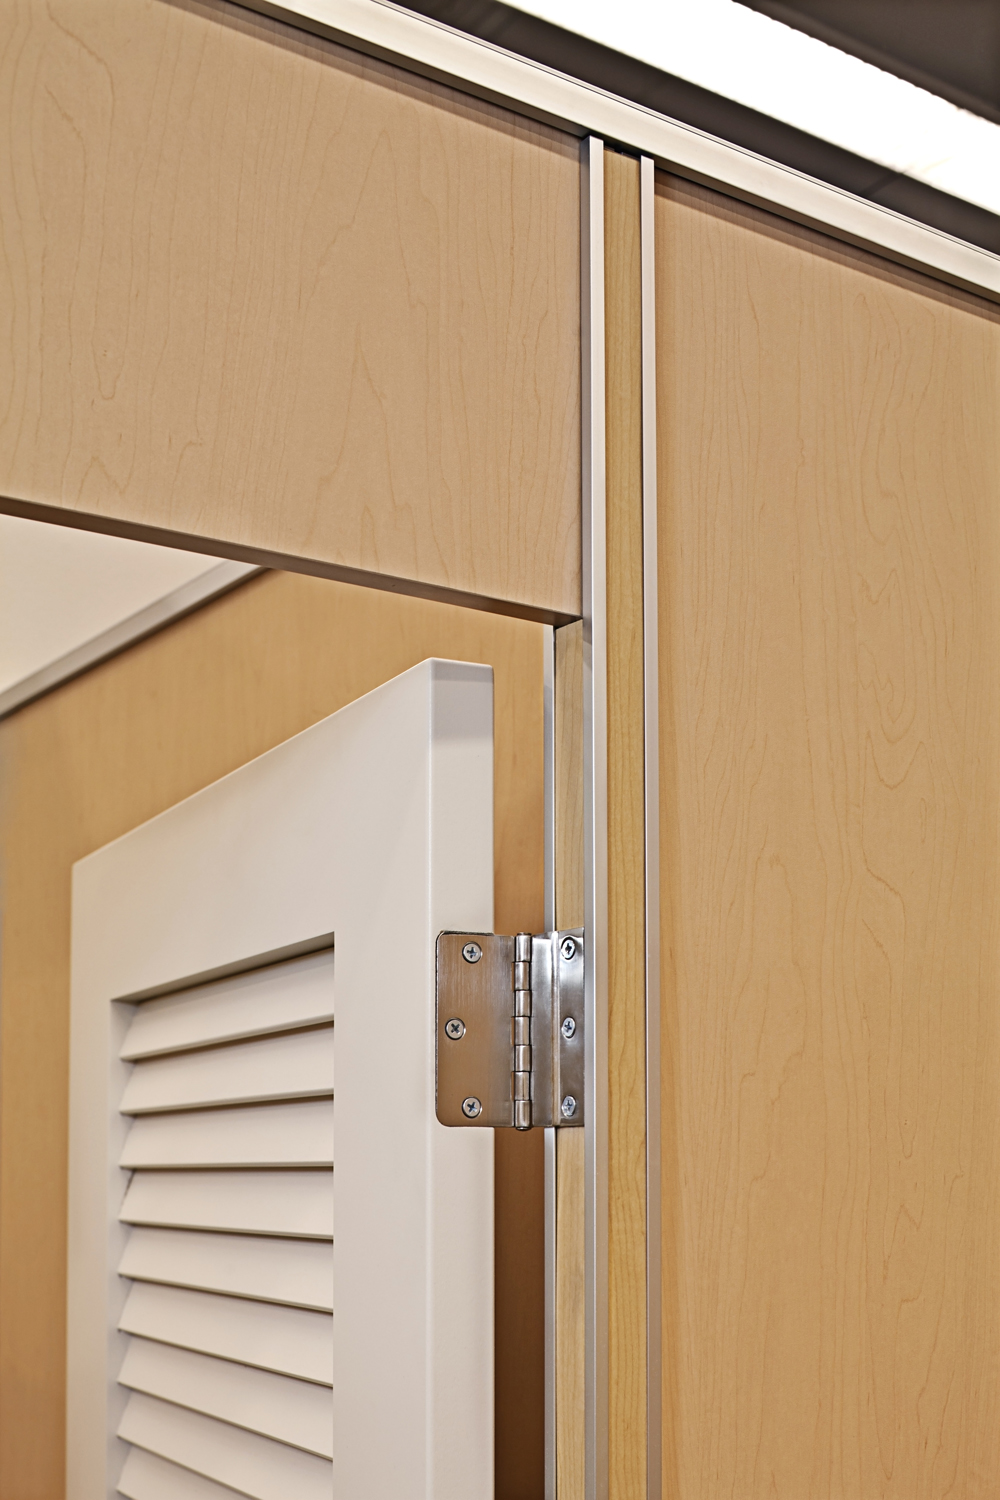 Burlington Fitting Rooms Door Hinge Image 1low res.jpg